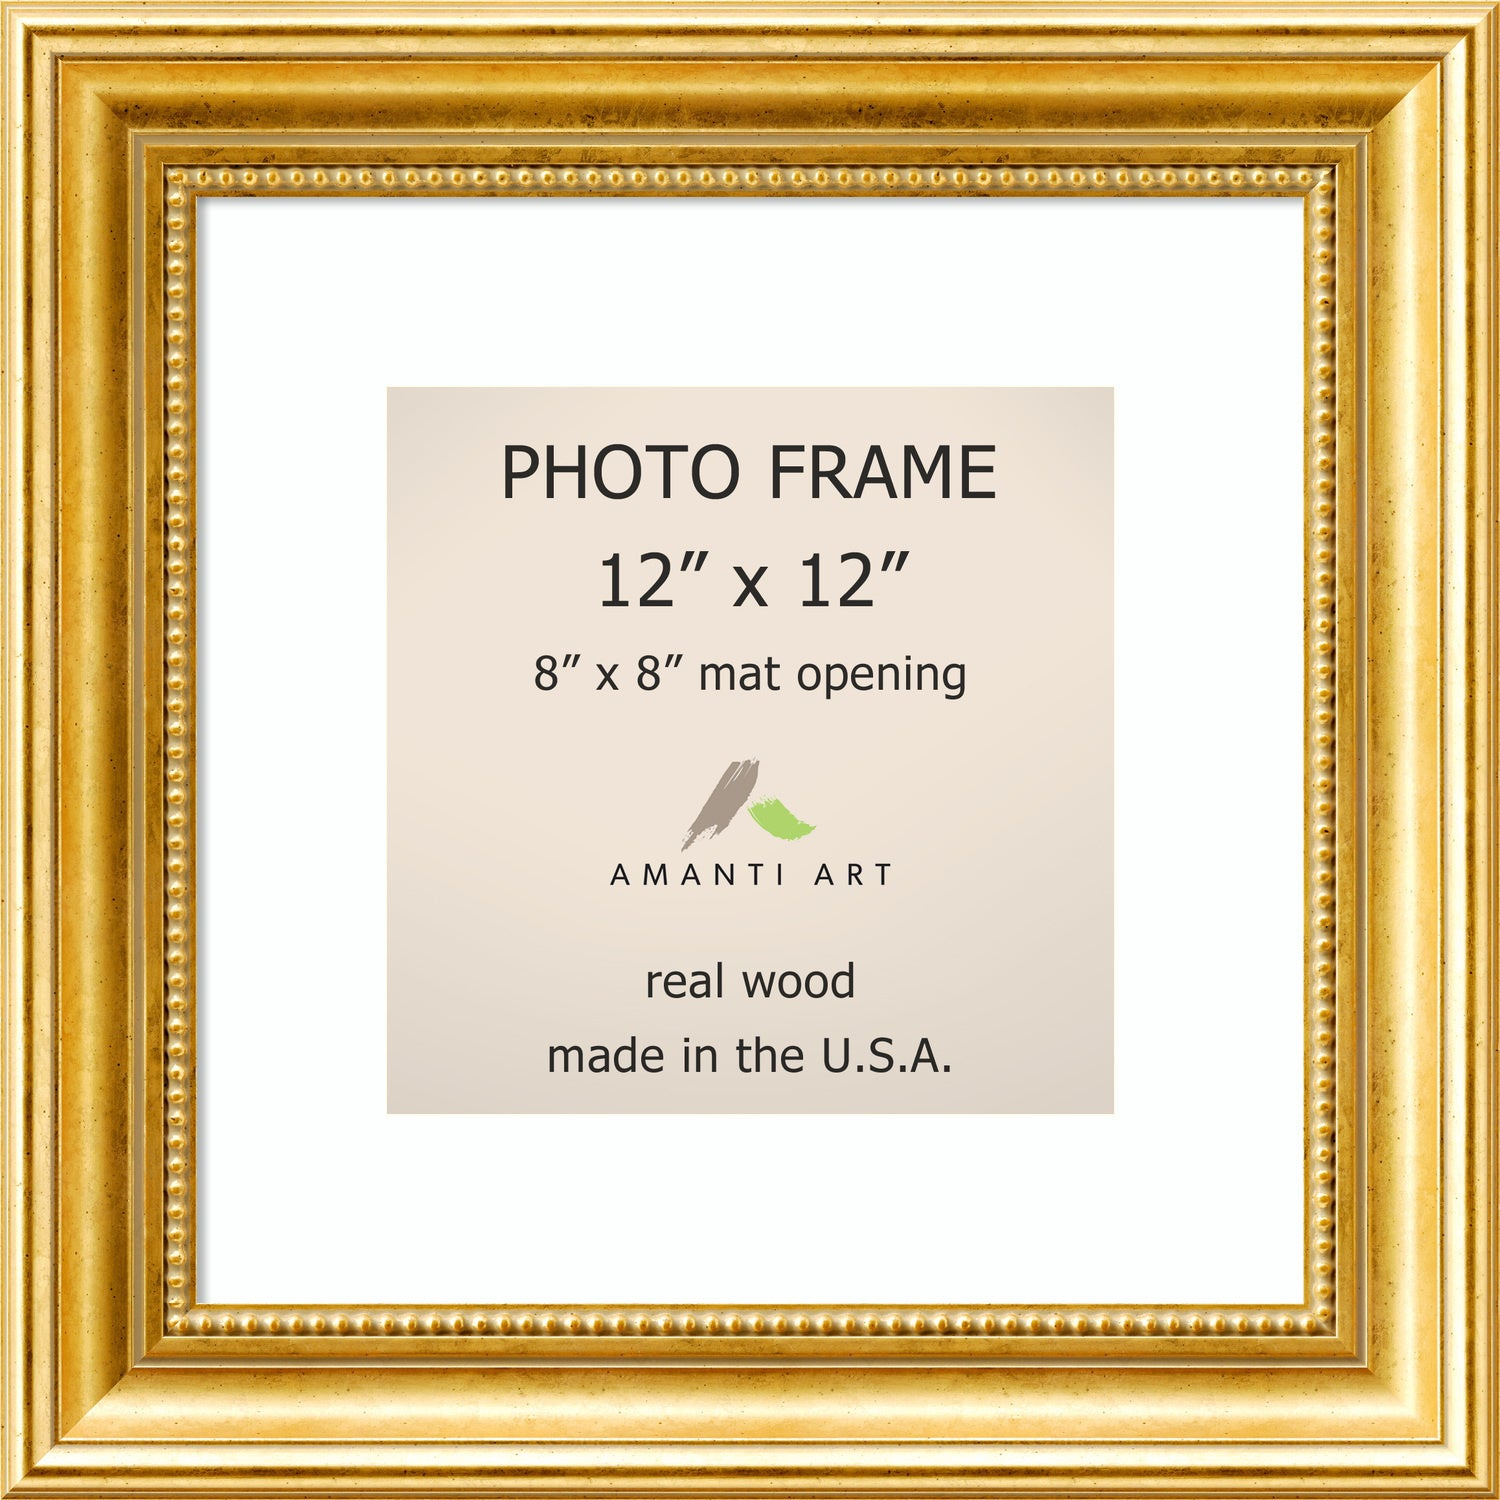 Townhouse Gold Photo Frame 15 X 15 Inch 32231285192 Ebay